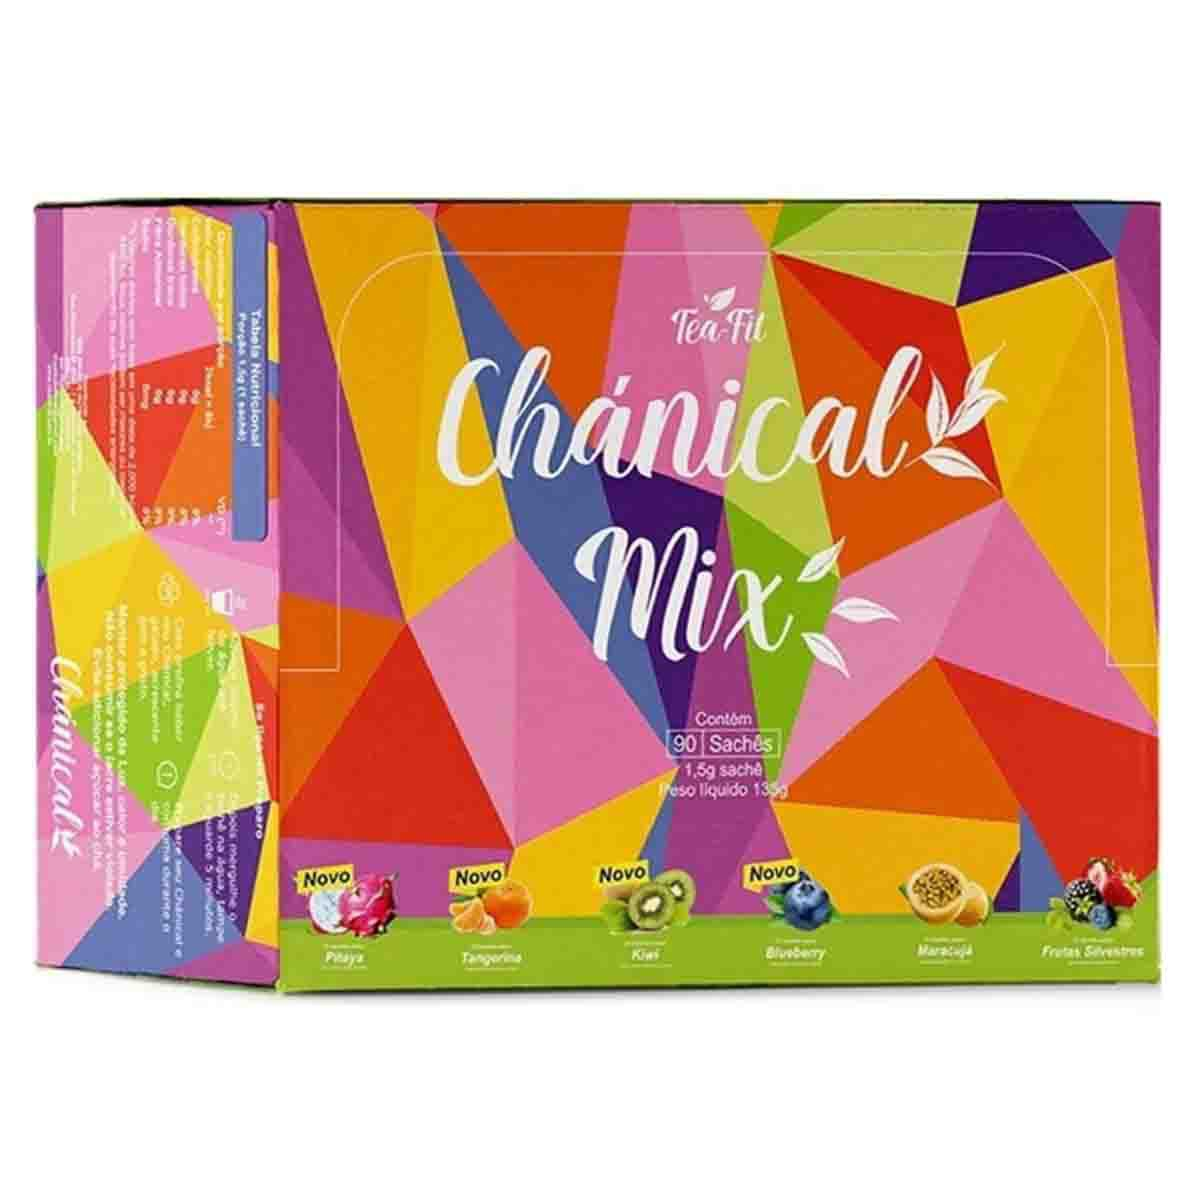 Chánical Mix 90 sachês - Tea-Fit